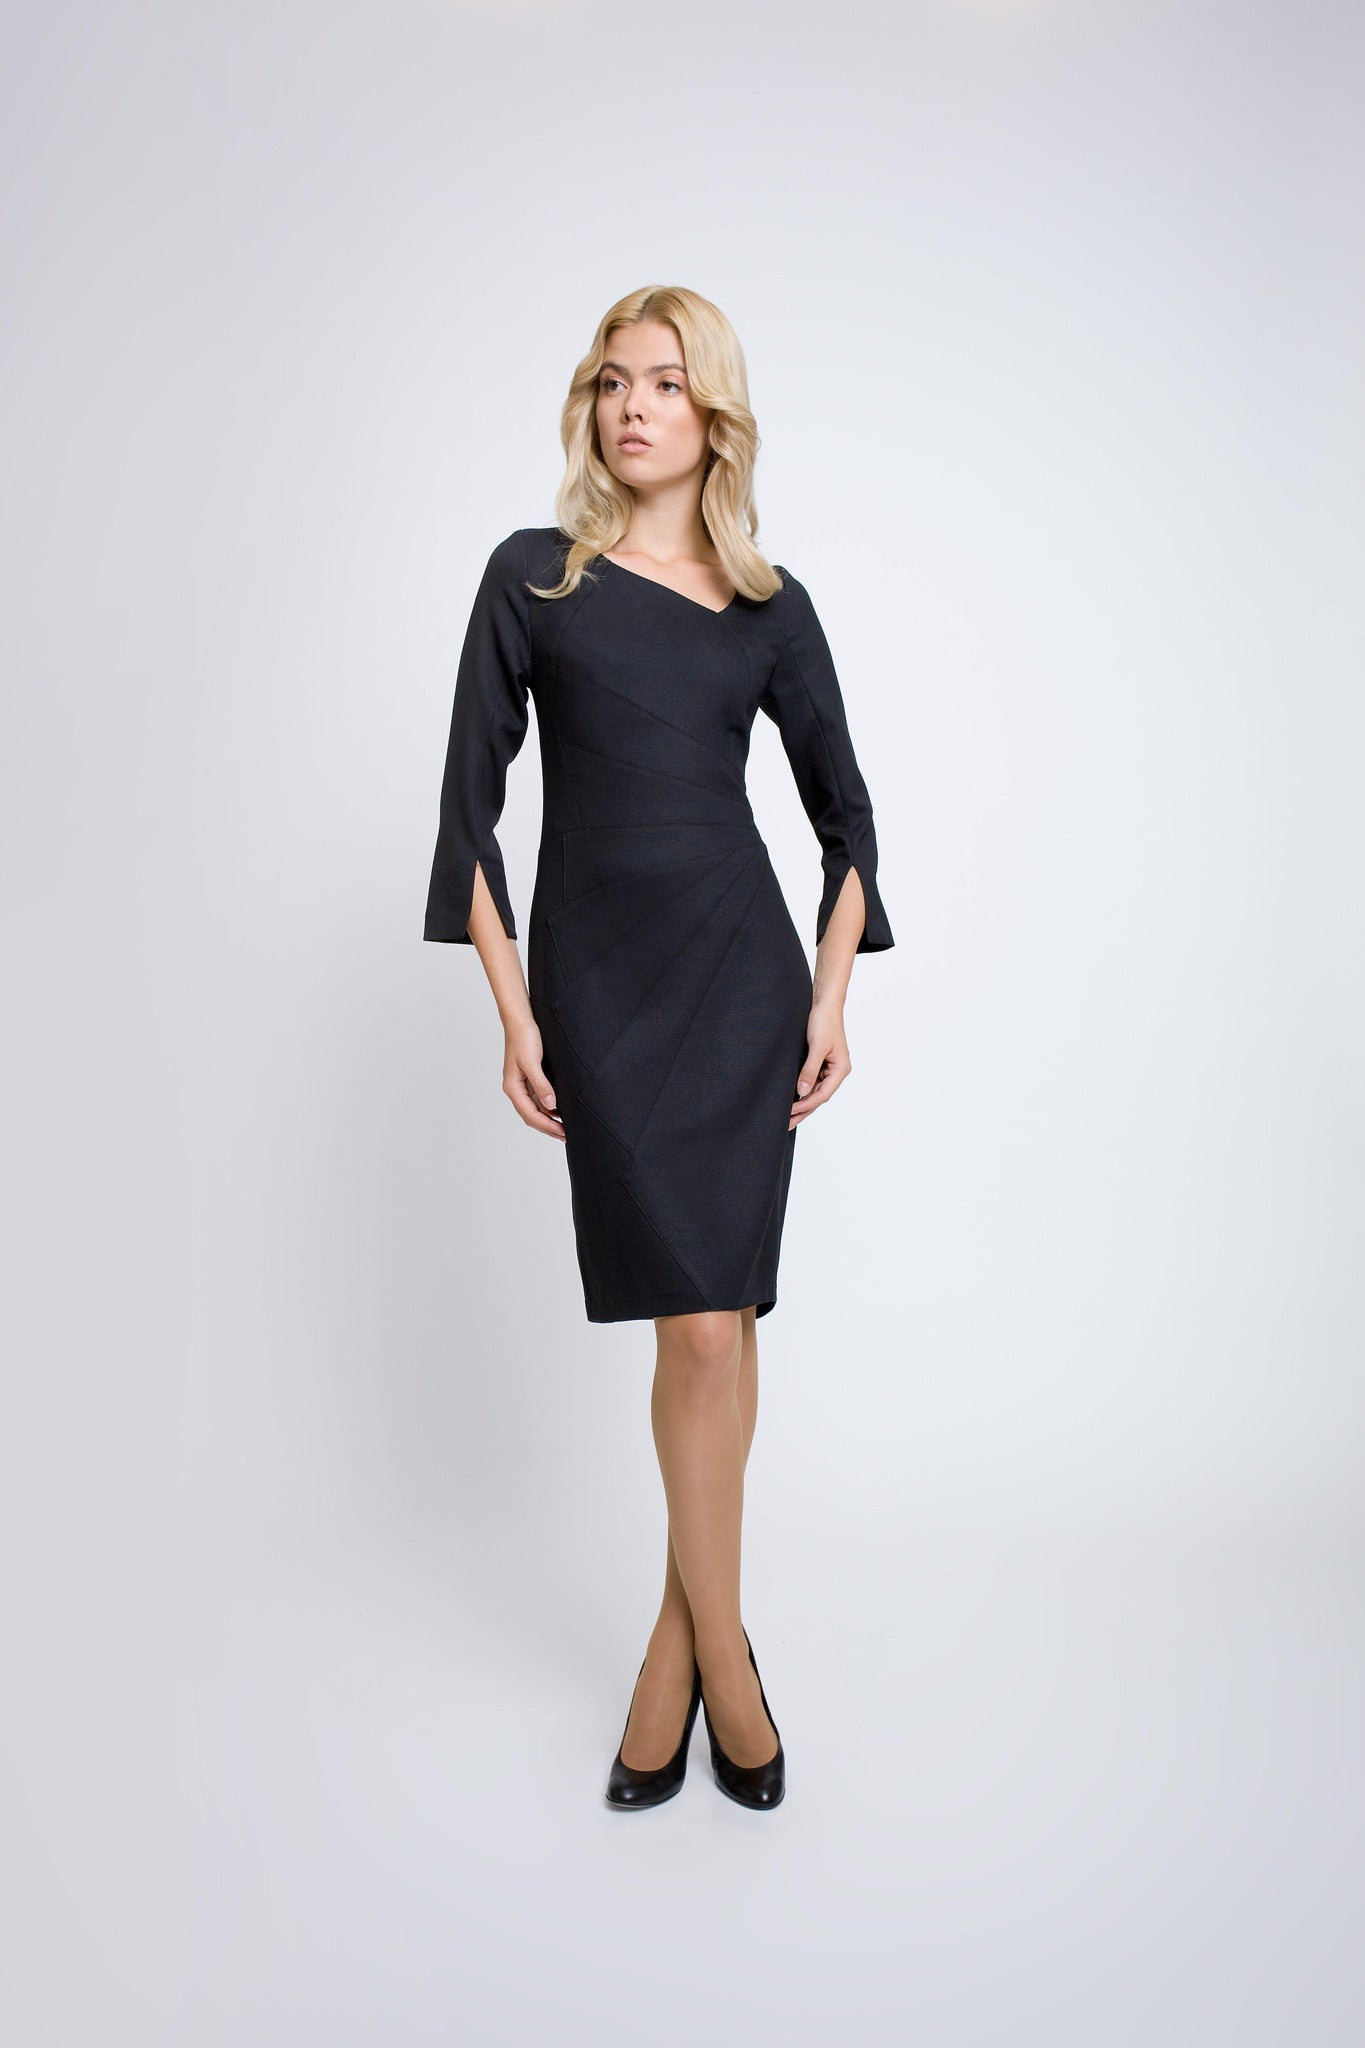 Tailored dress with asymmetric neckline